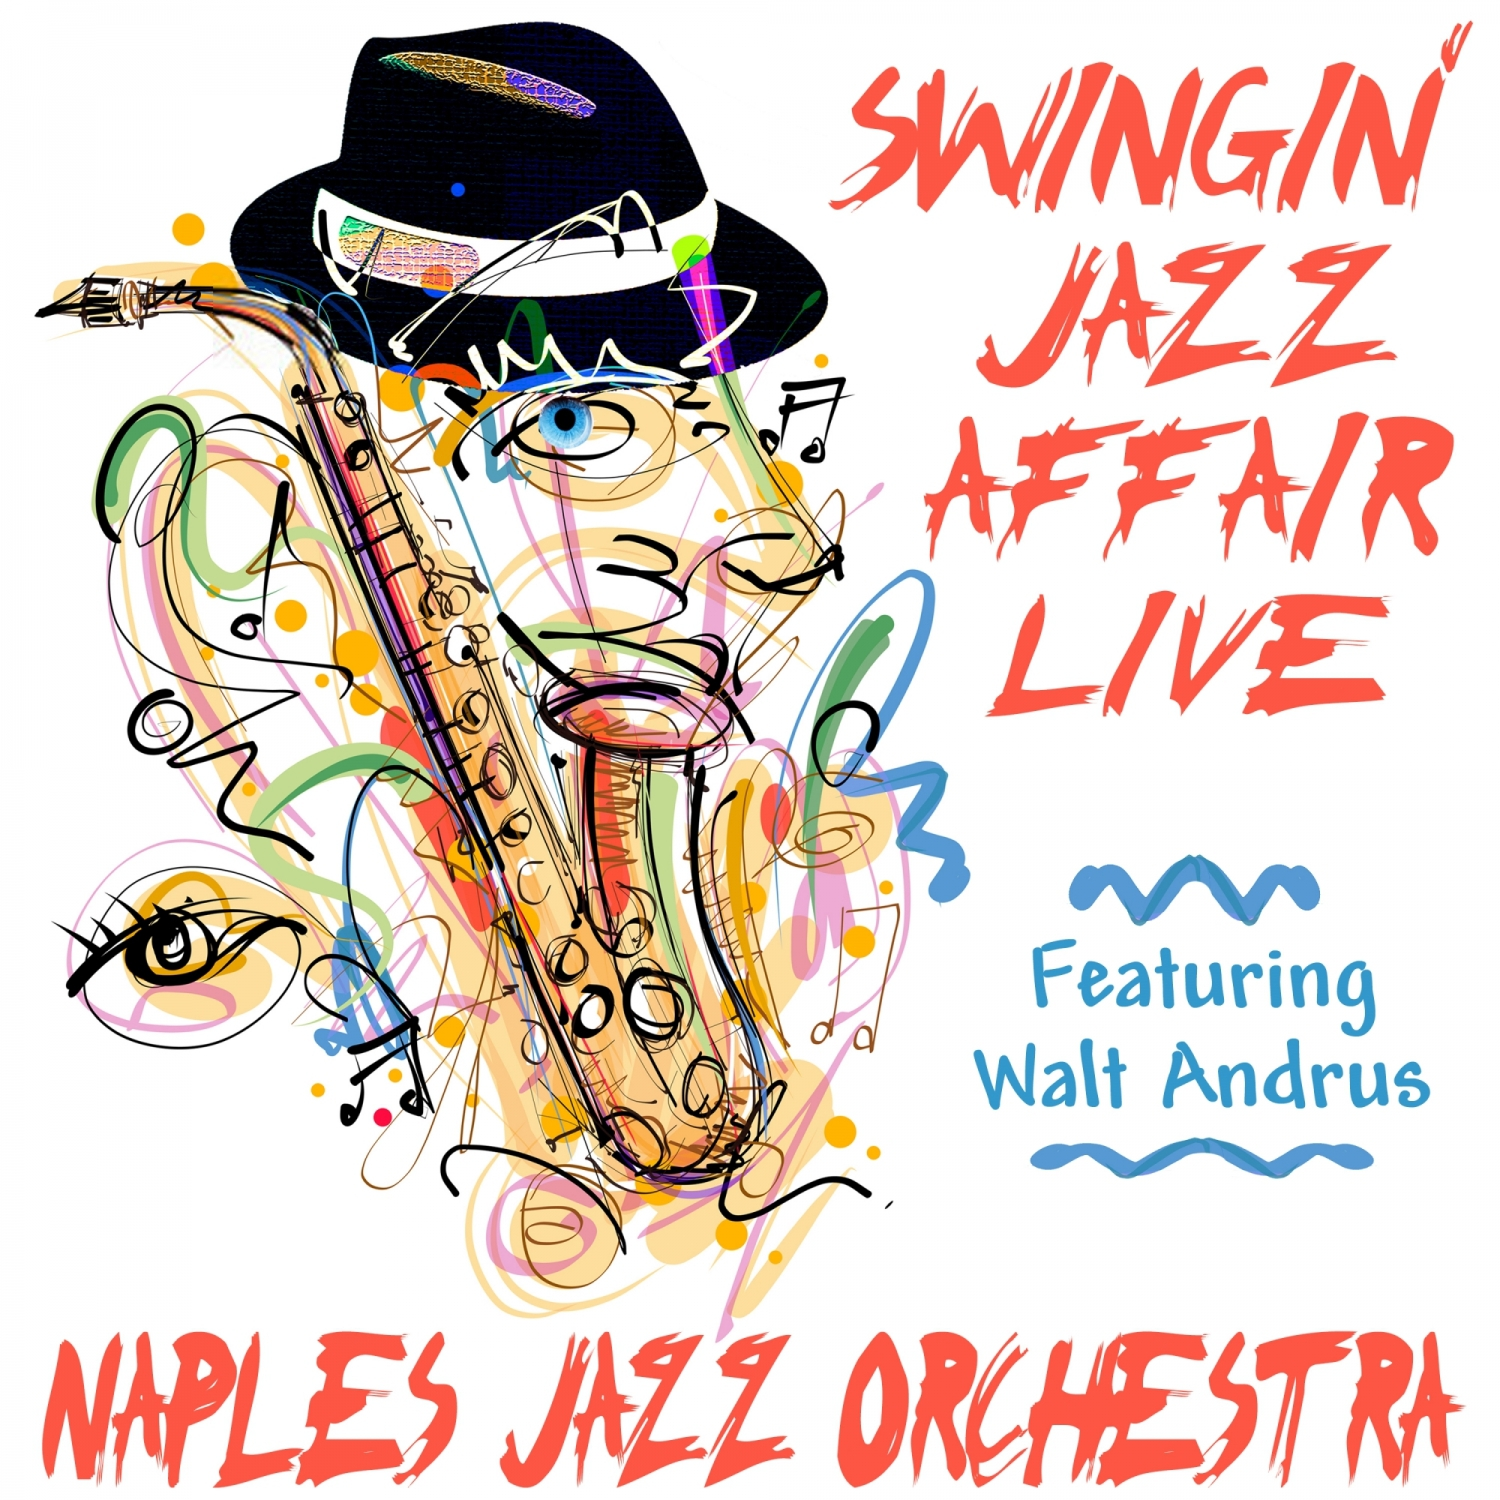 The Naples Jazz Orchestra  - Without a Song  (feat. Walt Andrus)